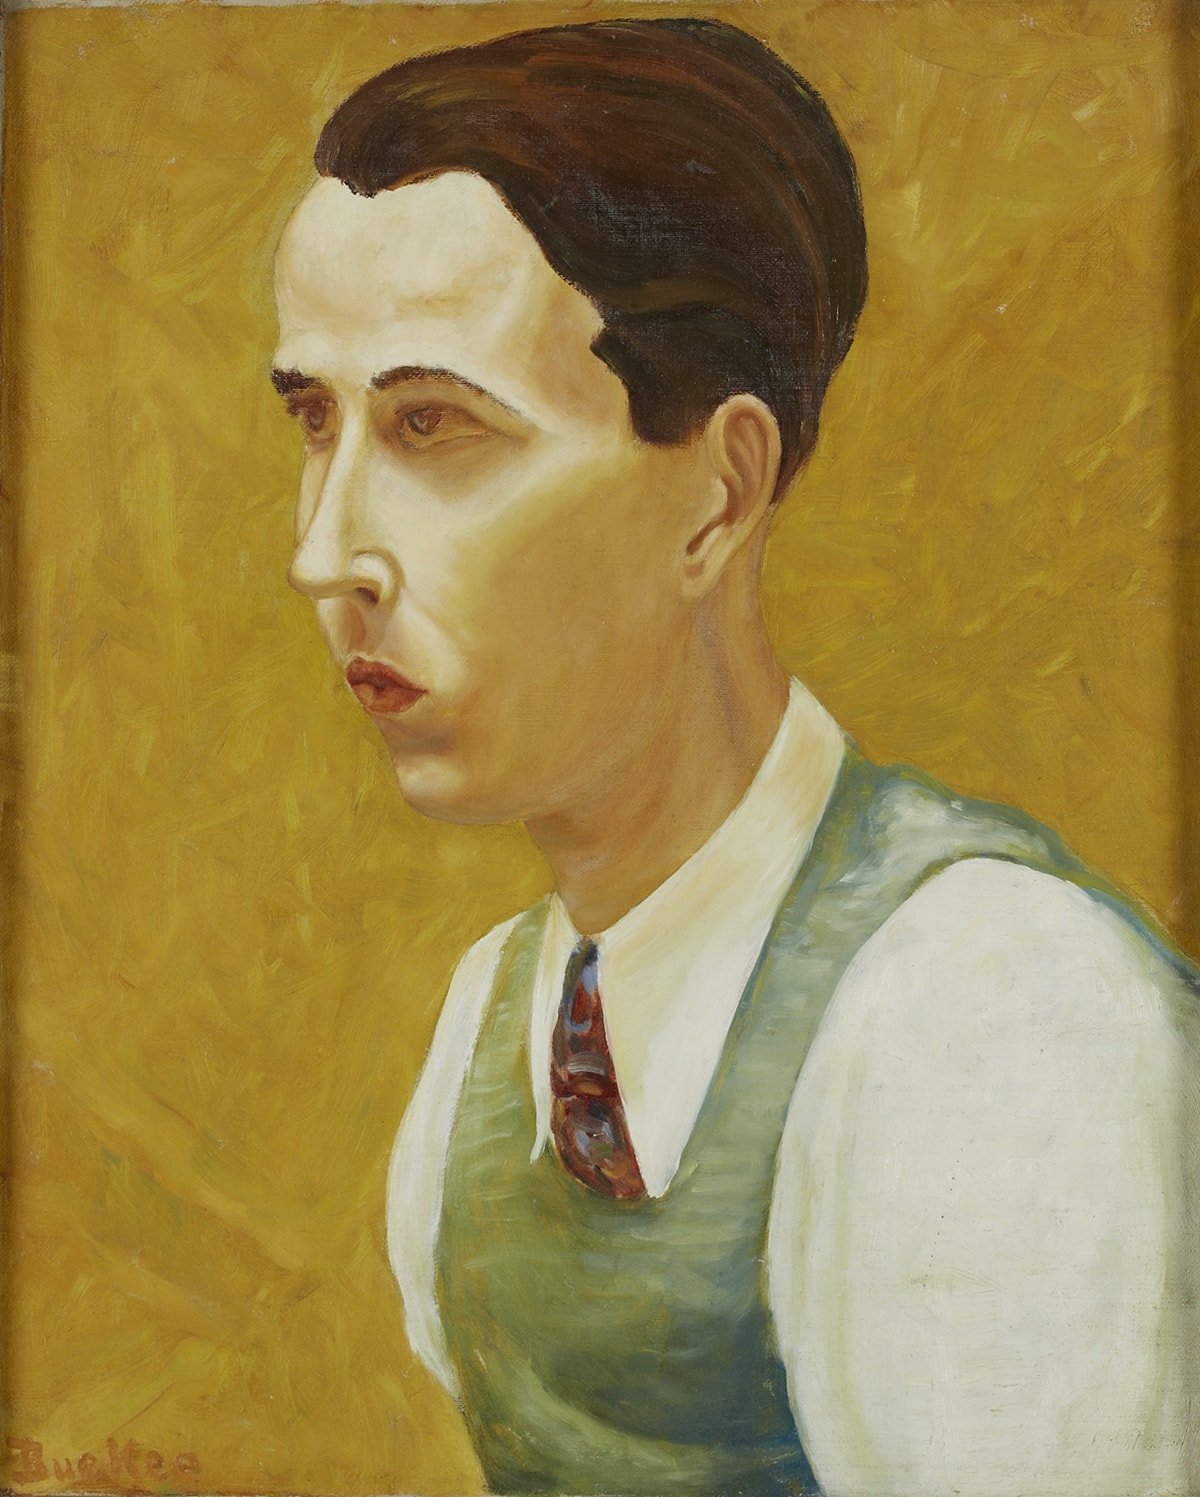 Portrait of a young, light-skinned Asian man, facing left in three-quarter view. He has a small mouth, his lips pursed, thin dark eyebrows, high cheekbones and a long thin nose. His brownish eyes are fixed in an intense gaze off to the left. He has a brown, full head of hair brushed back and elongated ears. Brushstrokes are visible in his hair and skin. Light catches the bridge of his nose, his cheekbones forehead and chin. Some areas reveal the weave of the canvas on which the portrait is painted. The figure wears an off-white collared shirt, with a blue-gray vest with horizontal brushstrokes of white and gold creating texture. A necktie depicted in red, blue and gold brushstrokes is visible at the throat. The background is a rich mustard gold color achieved by multiple brushstrokes filling the entire space.